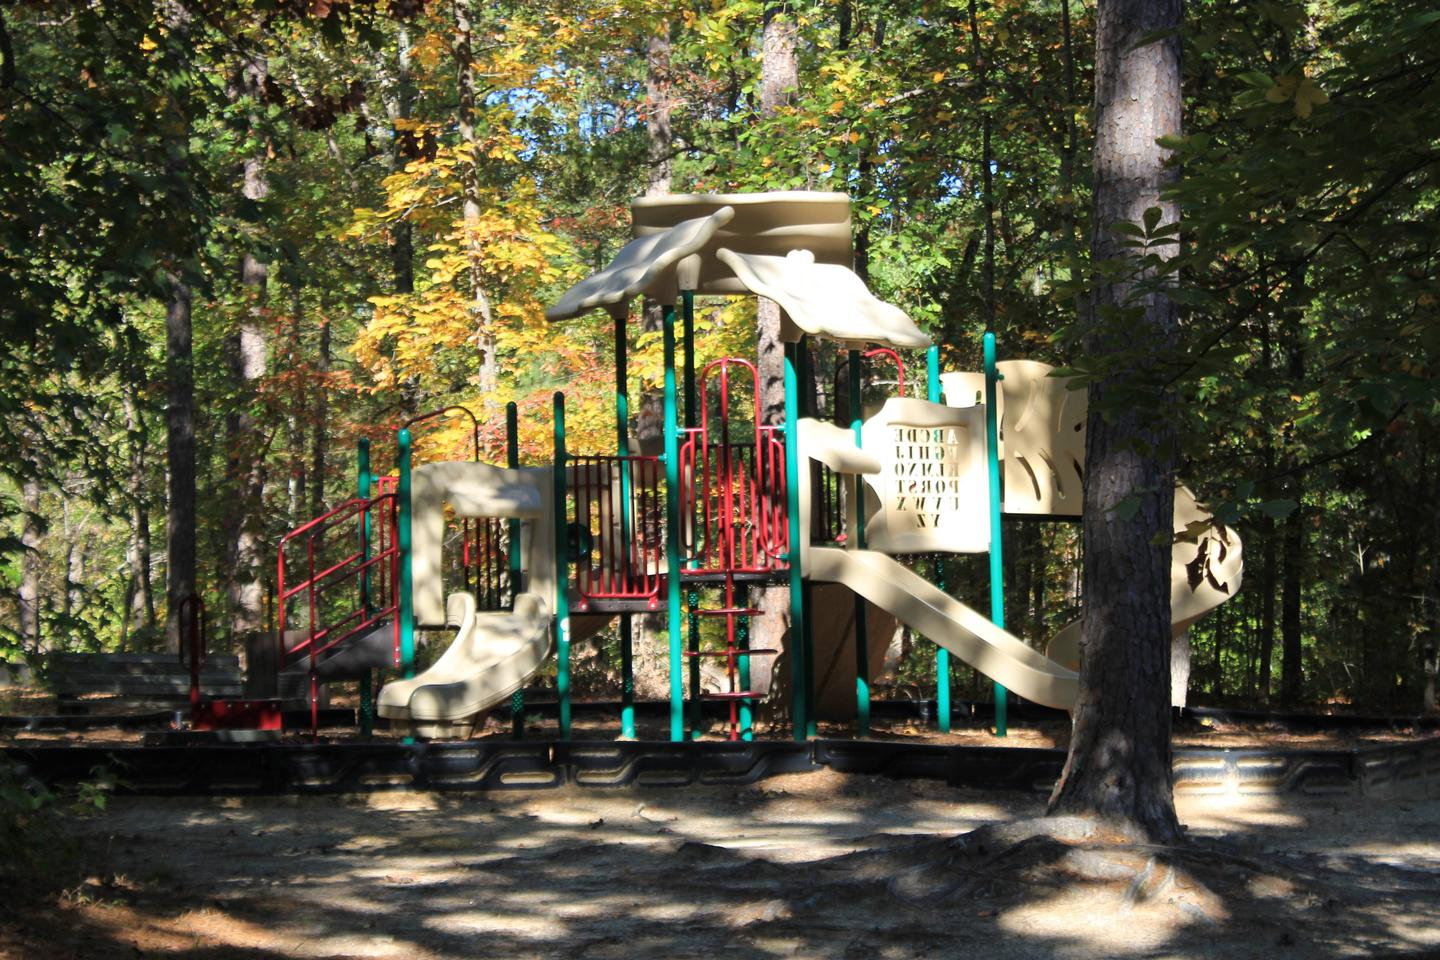 NBP Area B PlaygroundWelcome to North Bend Park! This is the playground located in Area B of North Bend Park.